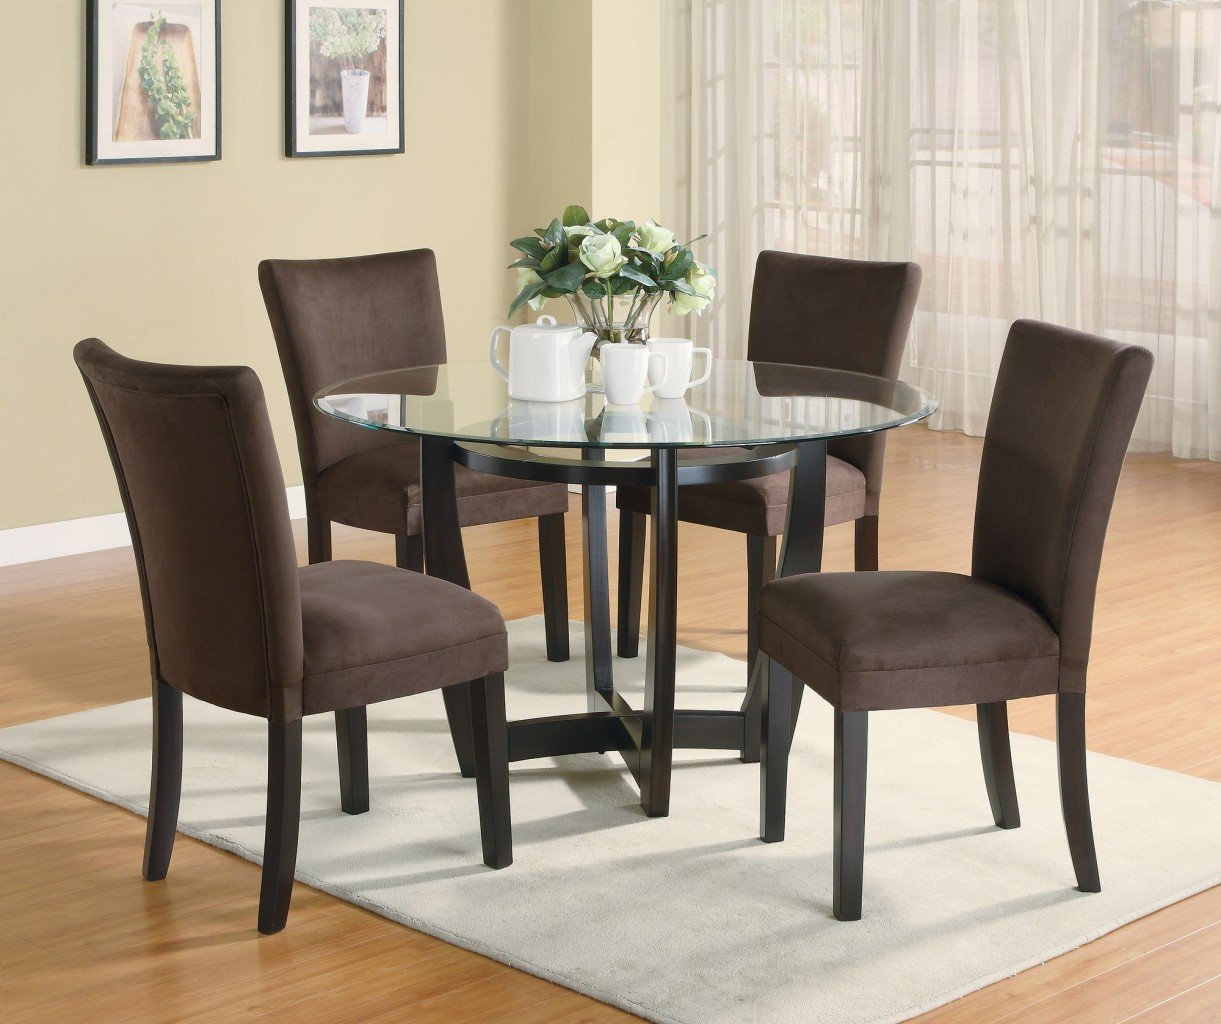 discount dining room furniture sets | Cheap Dining Room Table Sets - Home Furniture Design